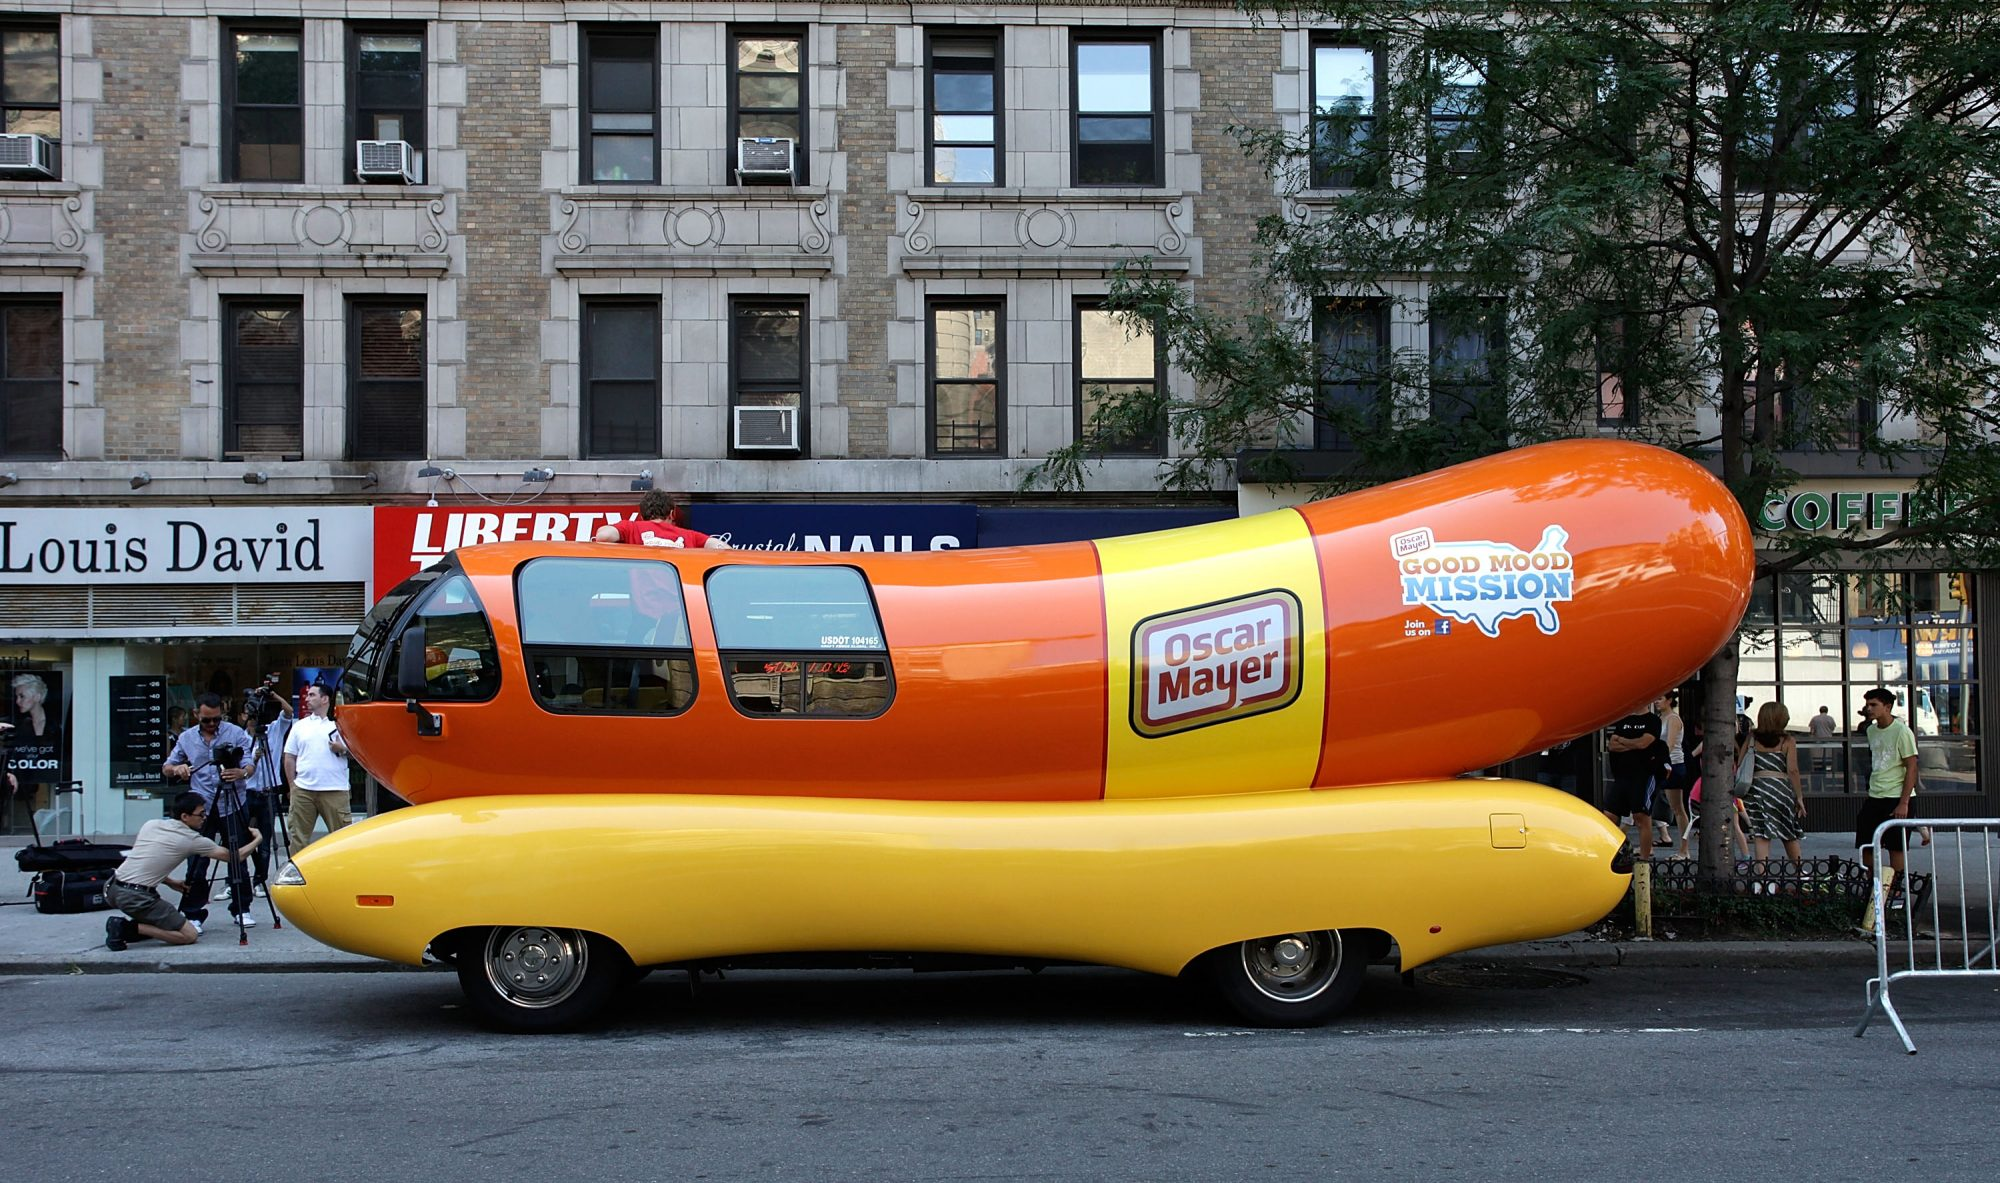 You Can Sleep in the Wienermobile at Lollapalooza